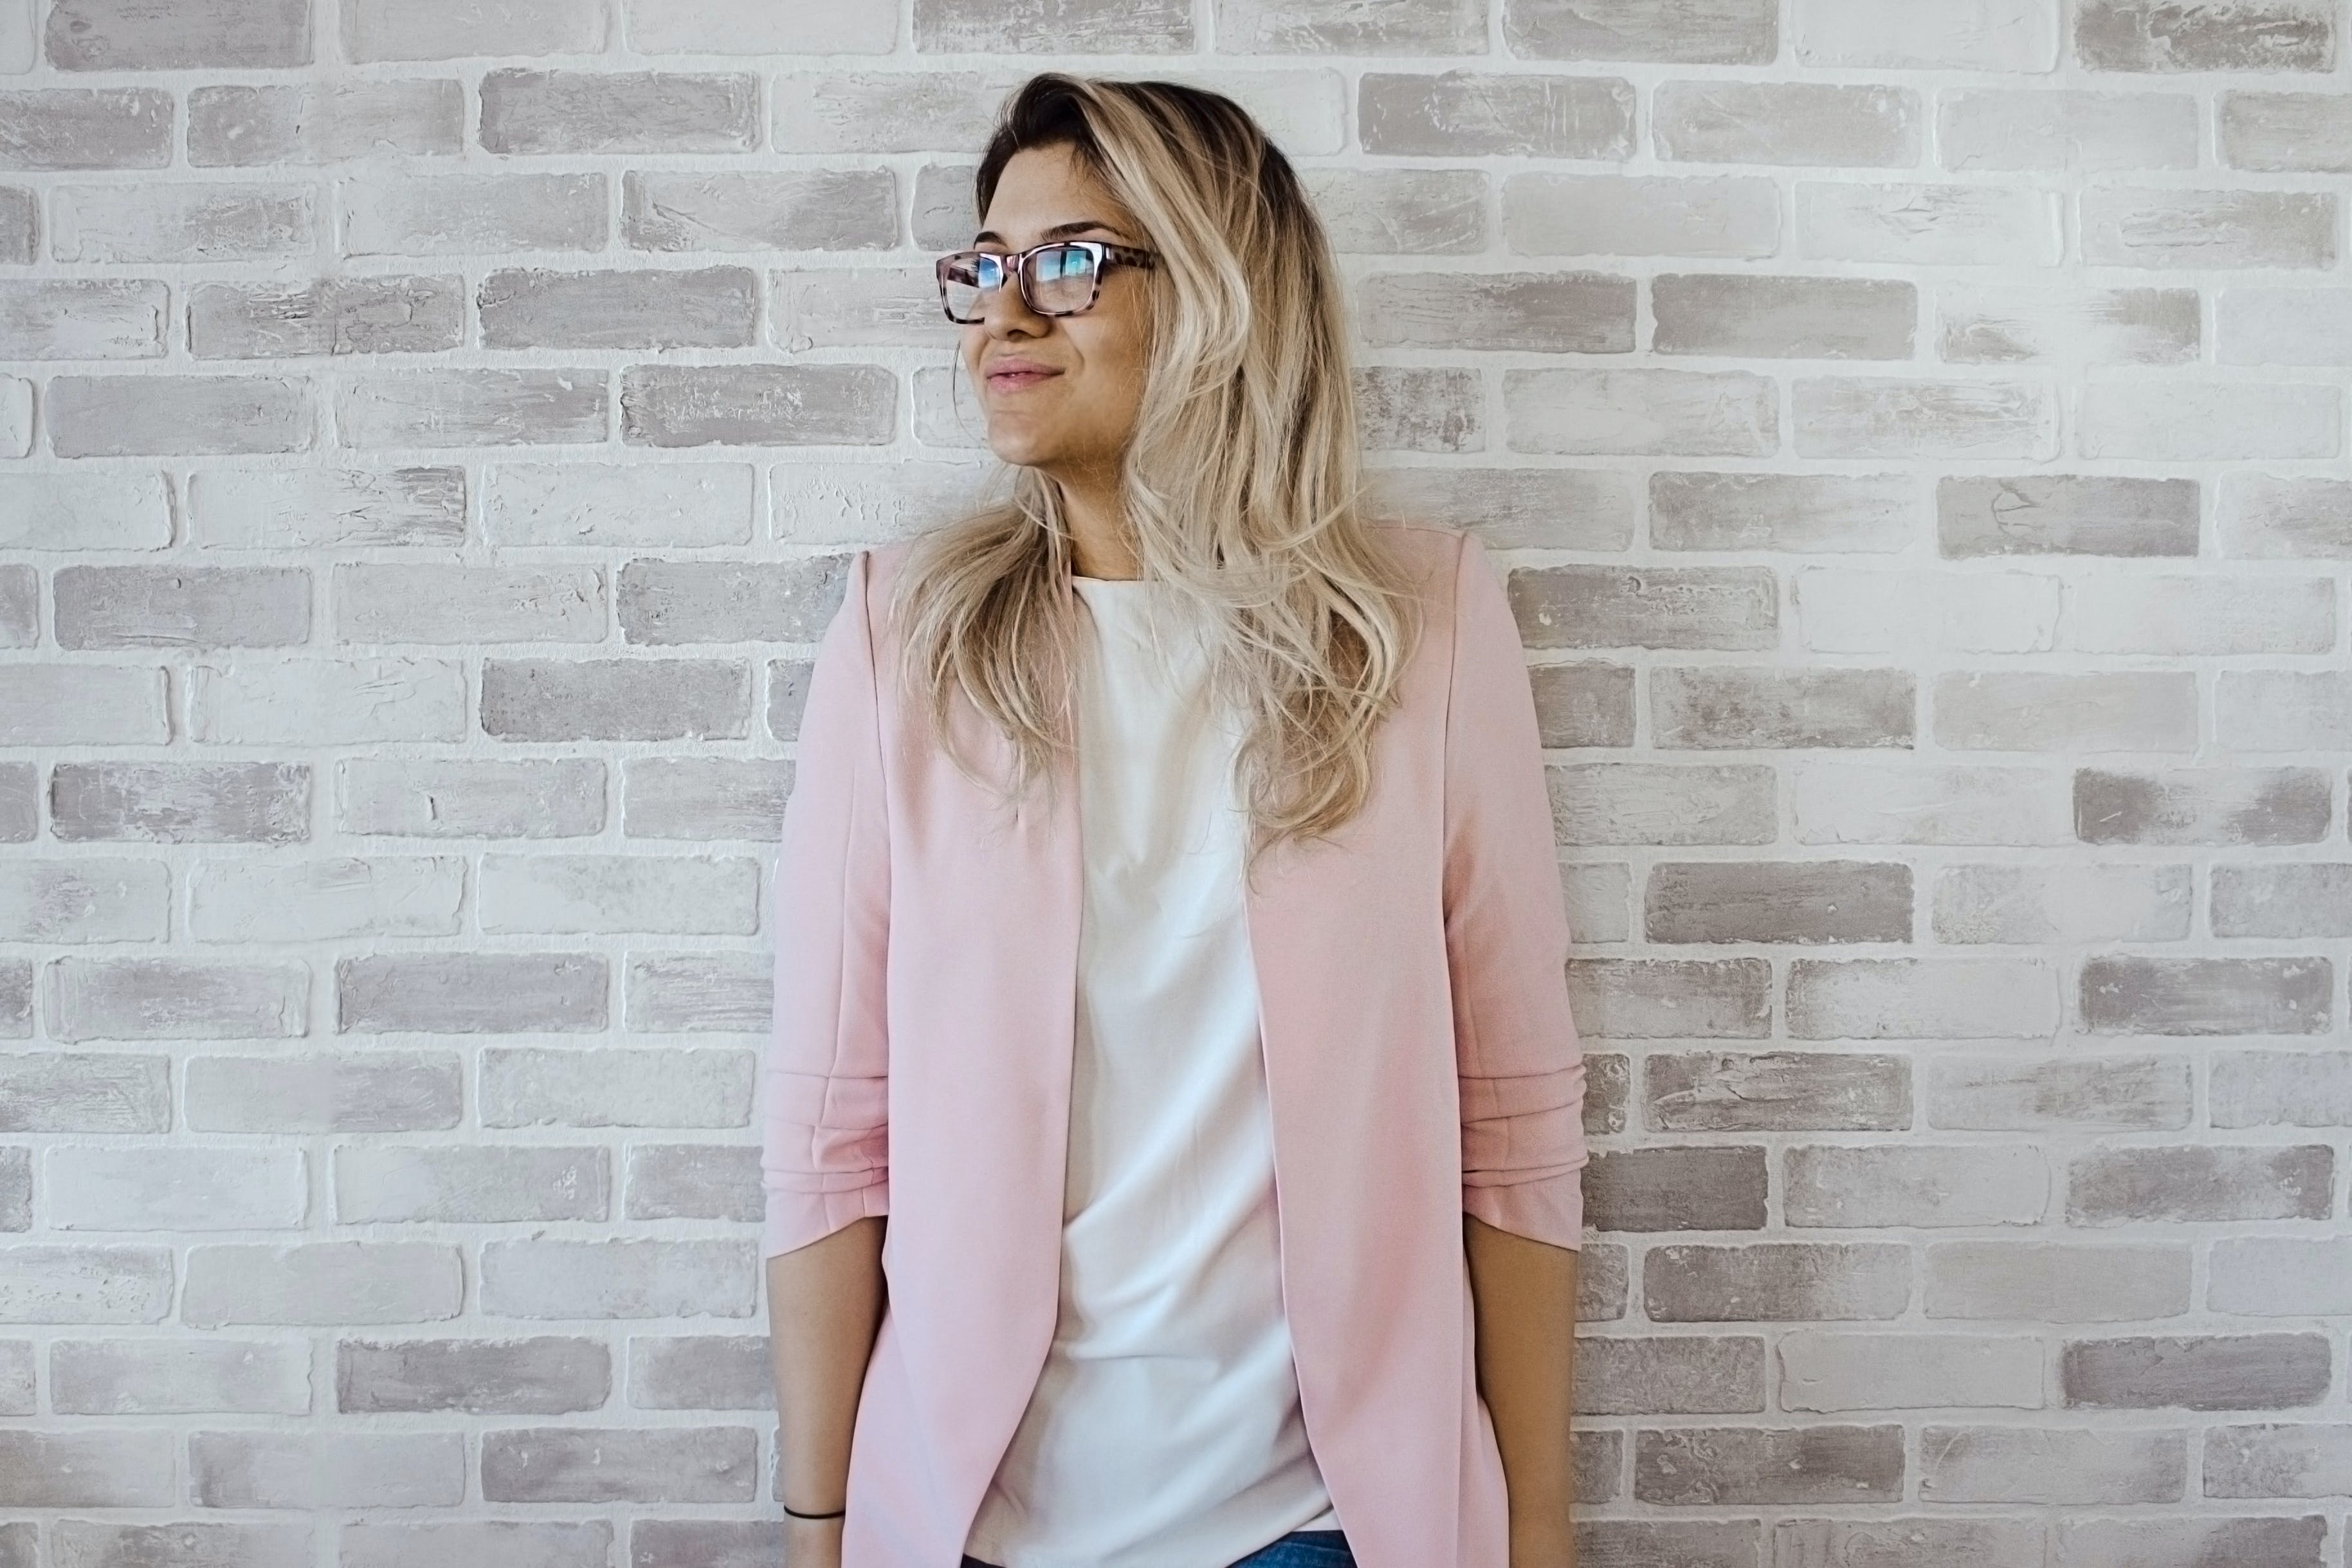 Woman in Pink Cardigan and White Shirt Leaning on the Wall